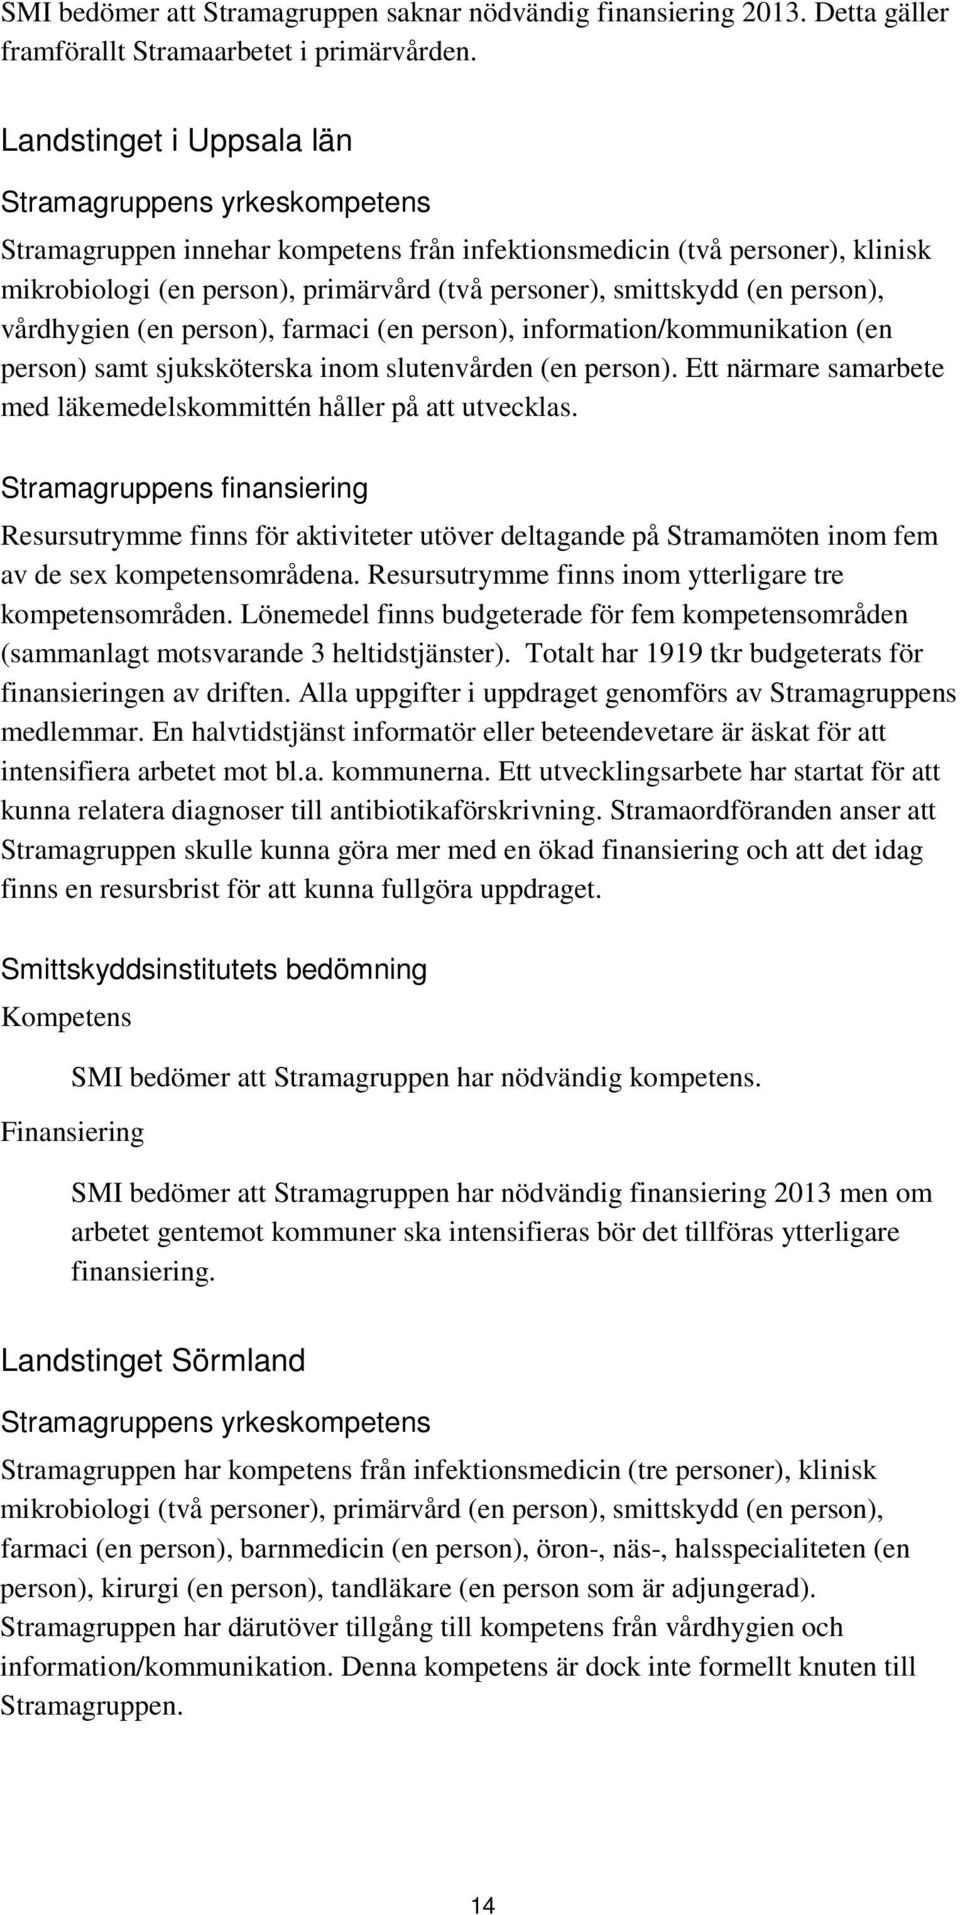 (en person), vårdhygien (en person), farmaci (en person), information/kommunikation (en person) samt sjuksköterska inom slutenvården (en person).